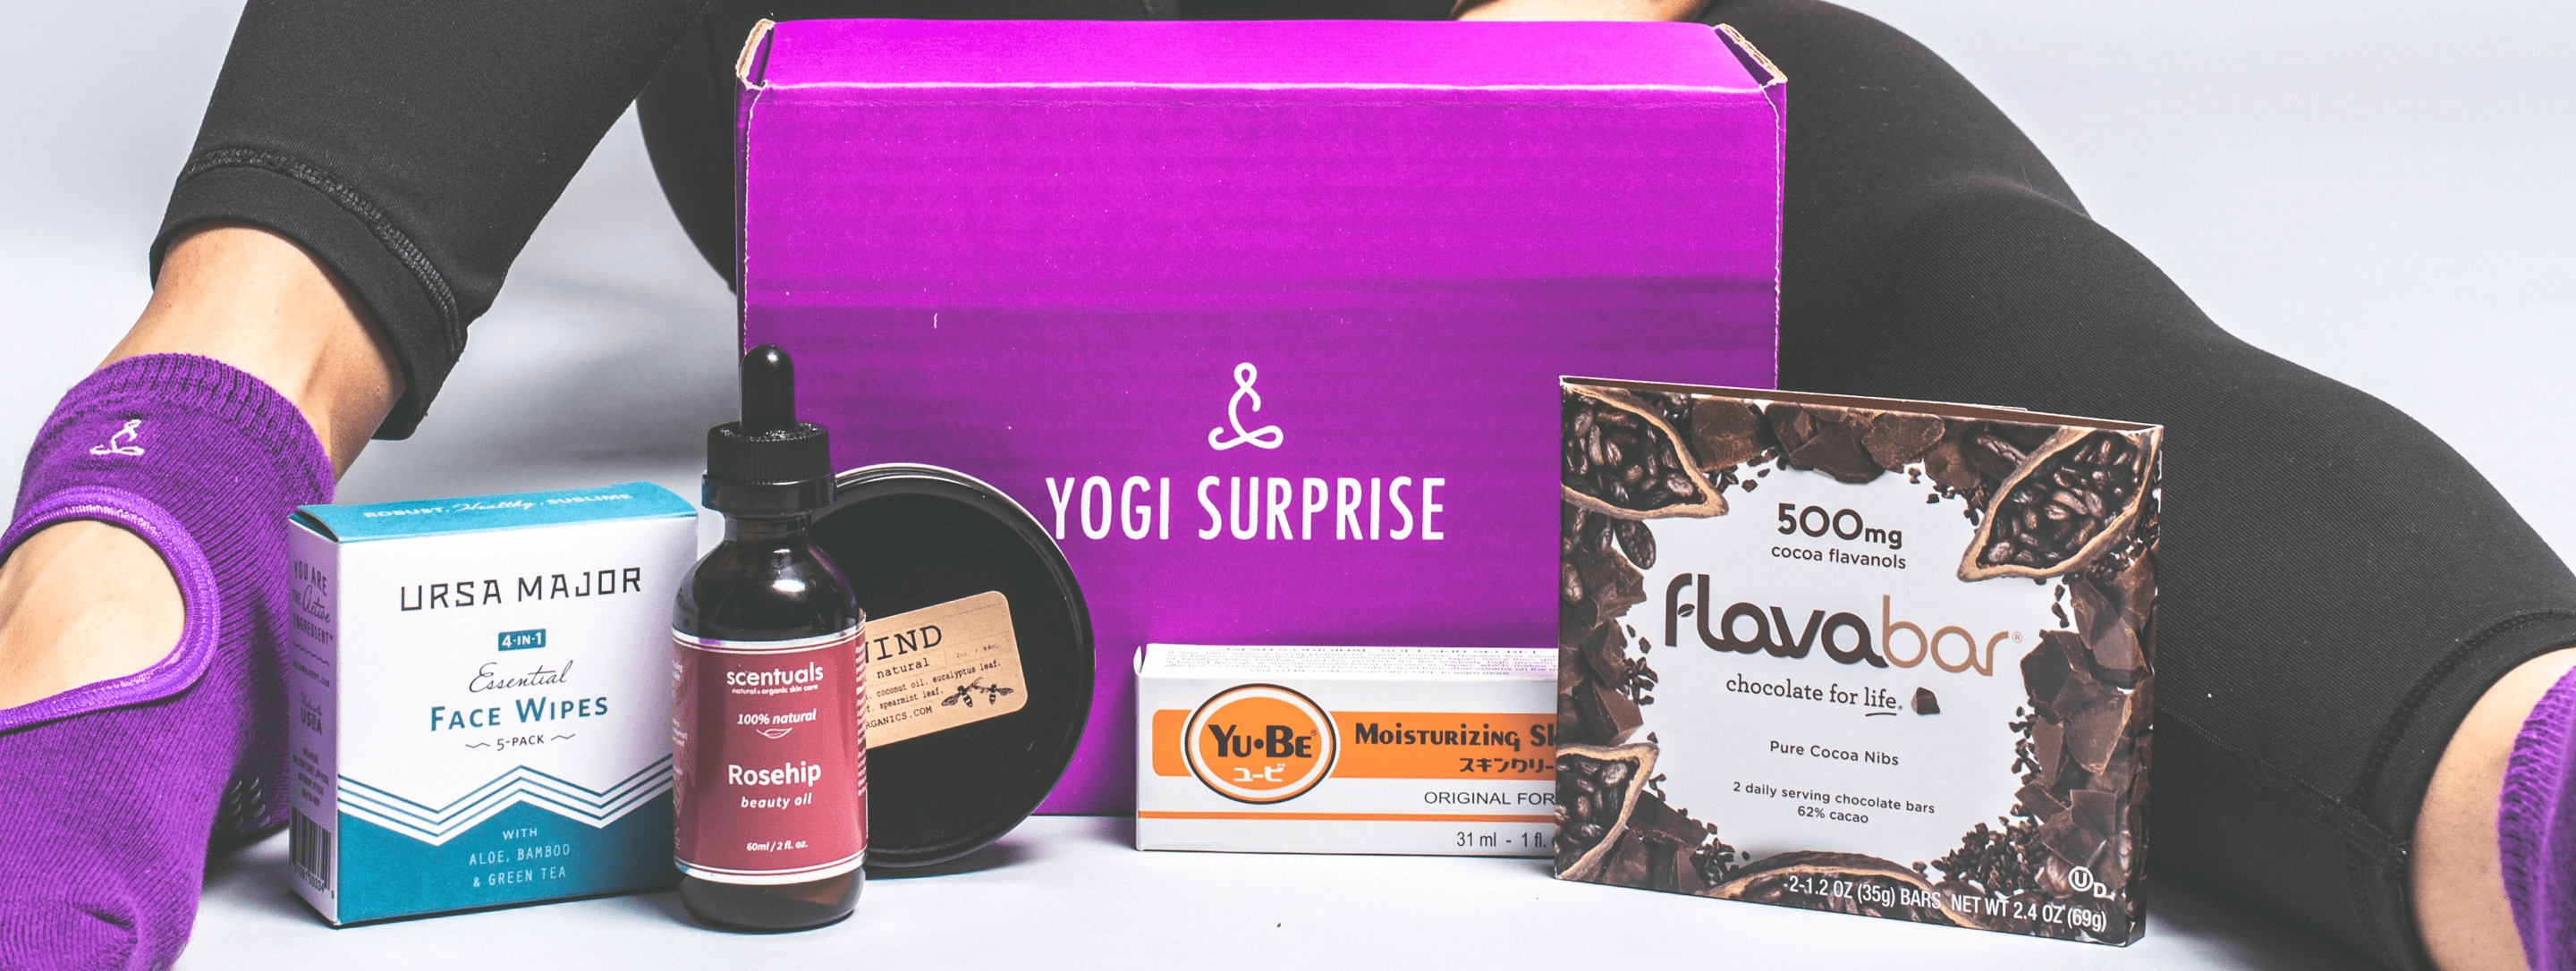 Yogi Surprise Cyber Monday Coupon: Free Extra Box with all Yogi Surprise Subscriptions!